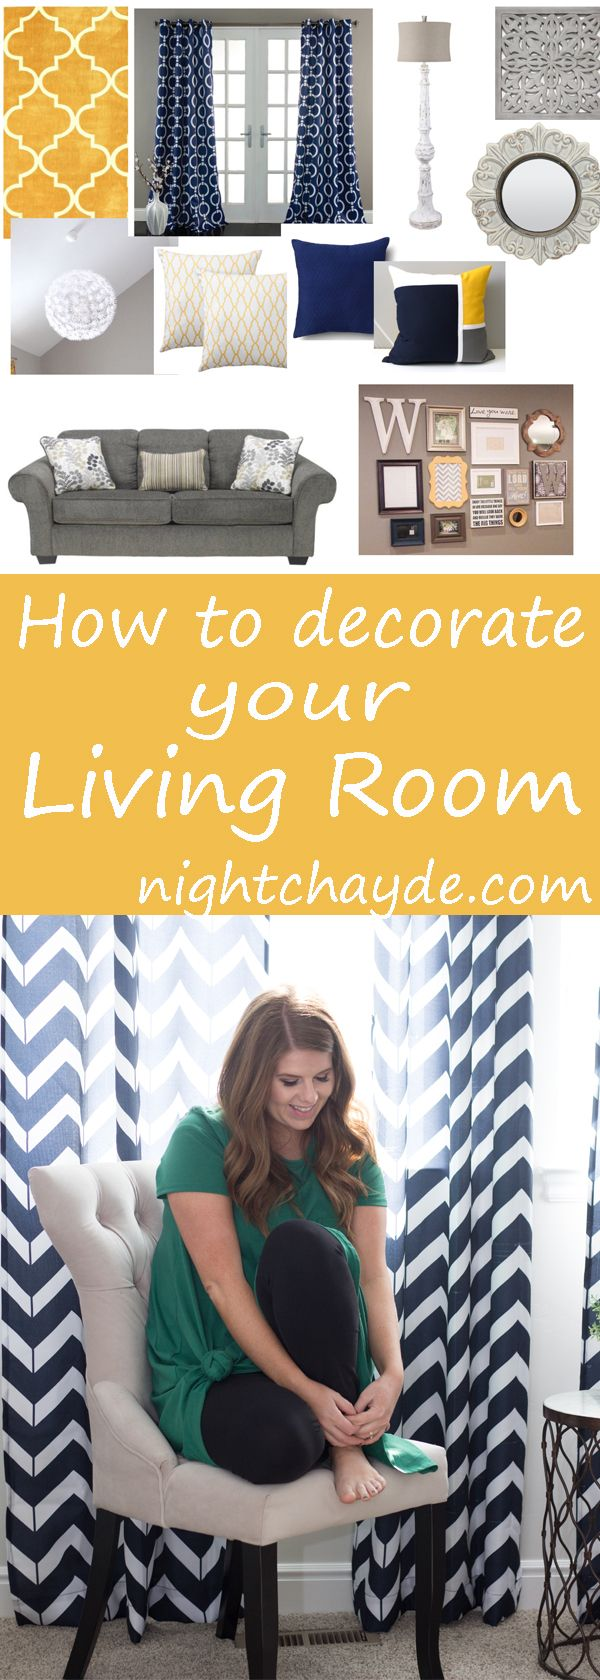 Home Decor on a budget: inexpensive ways to decorate your ...